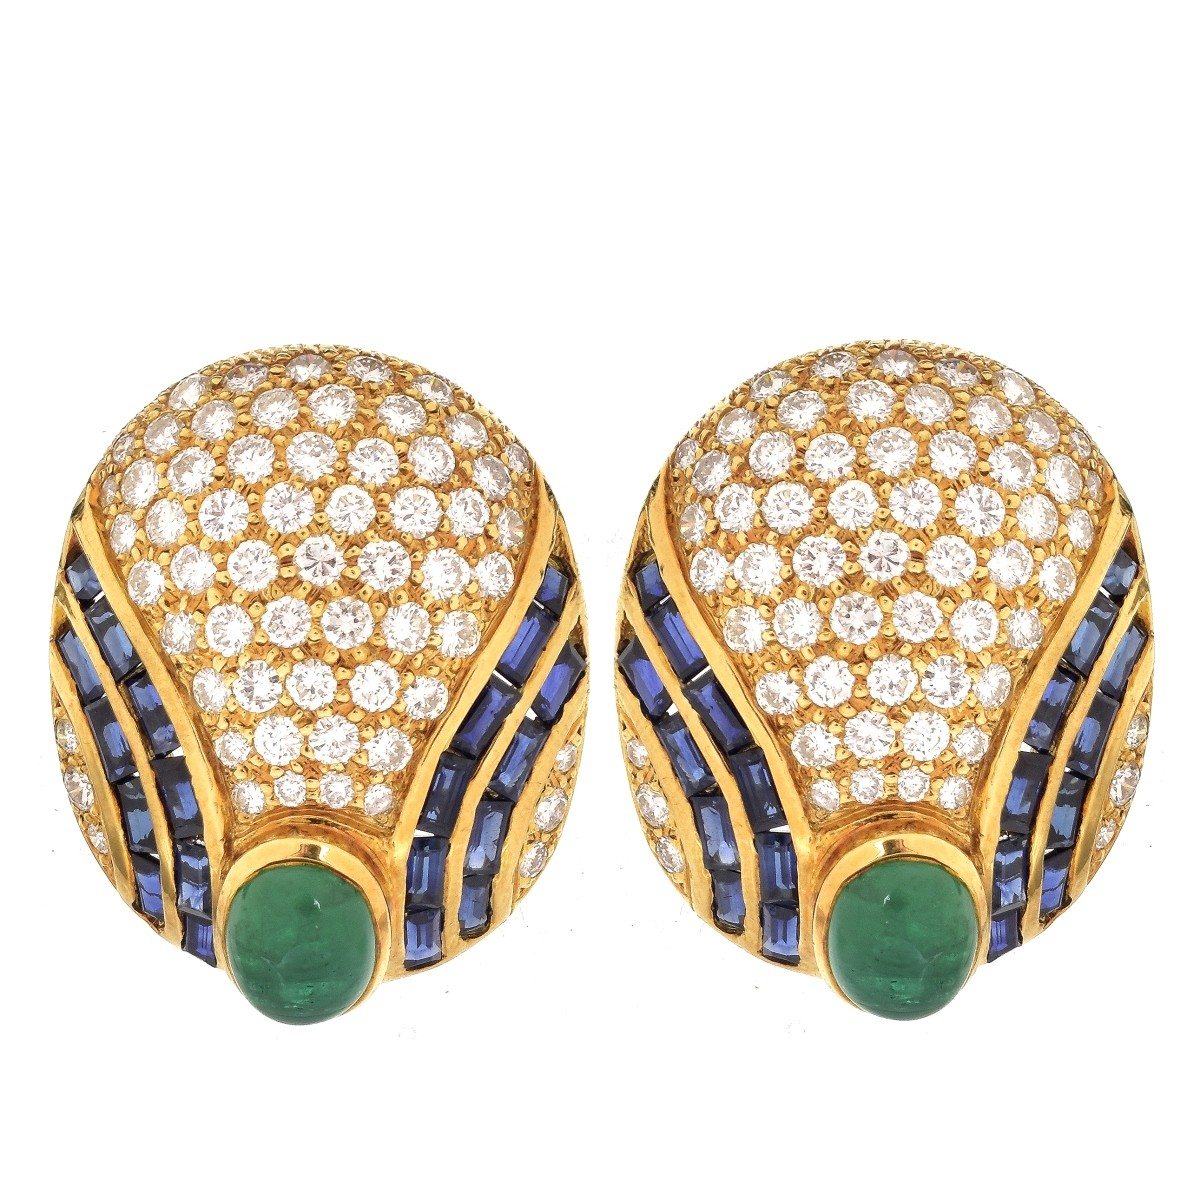 Diamond, Emerald, Sapphire and 18K Earrings